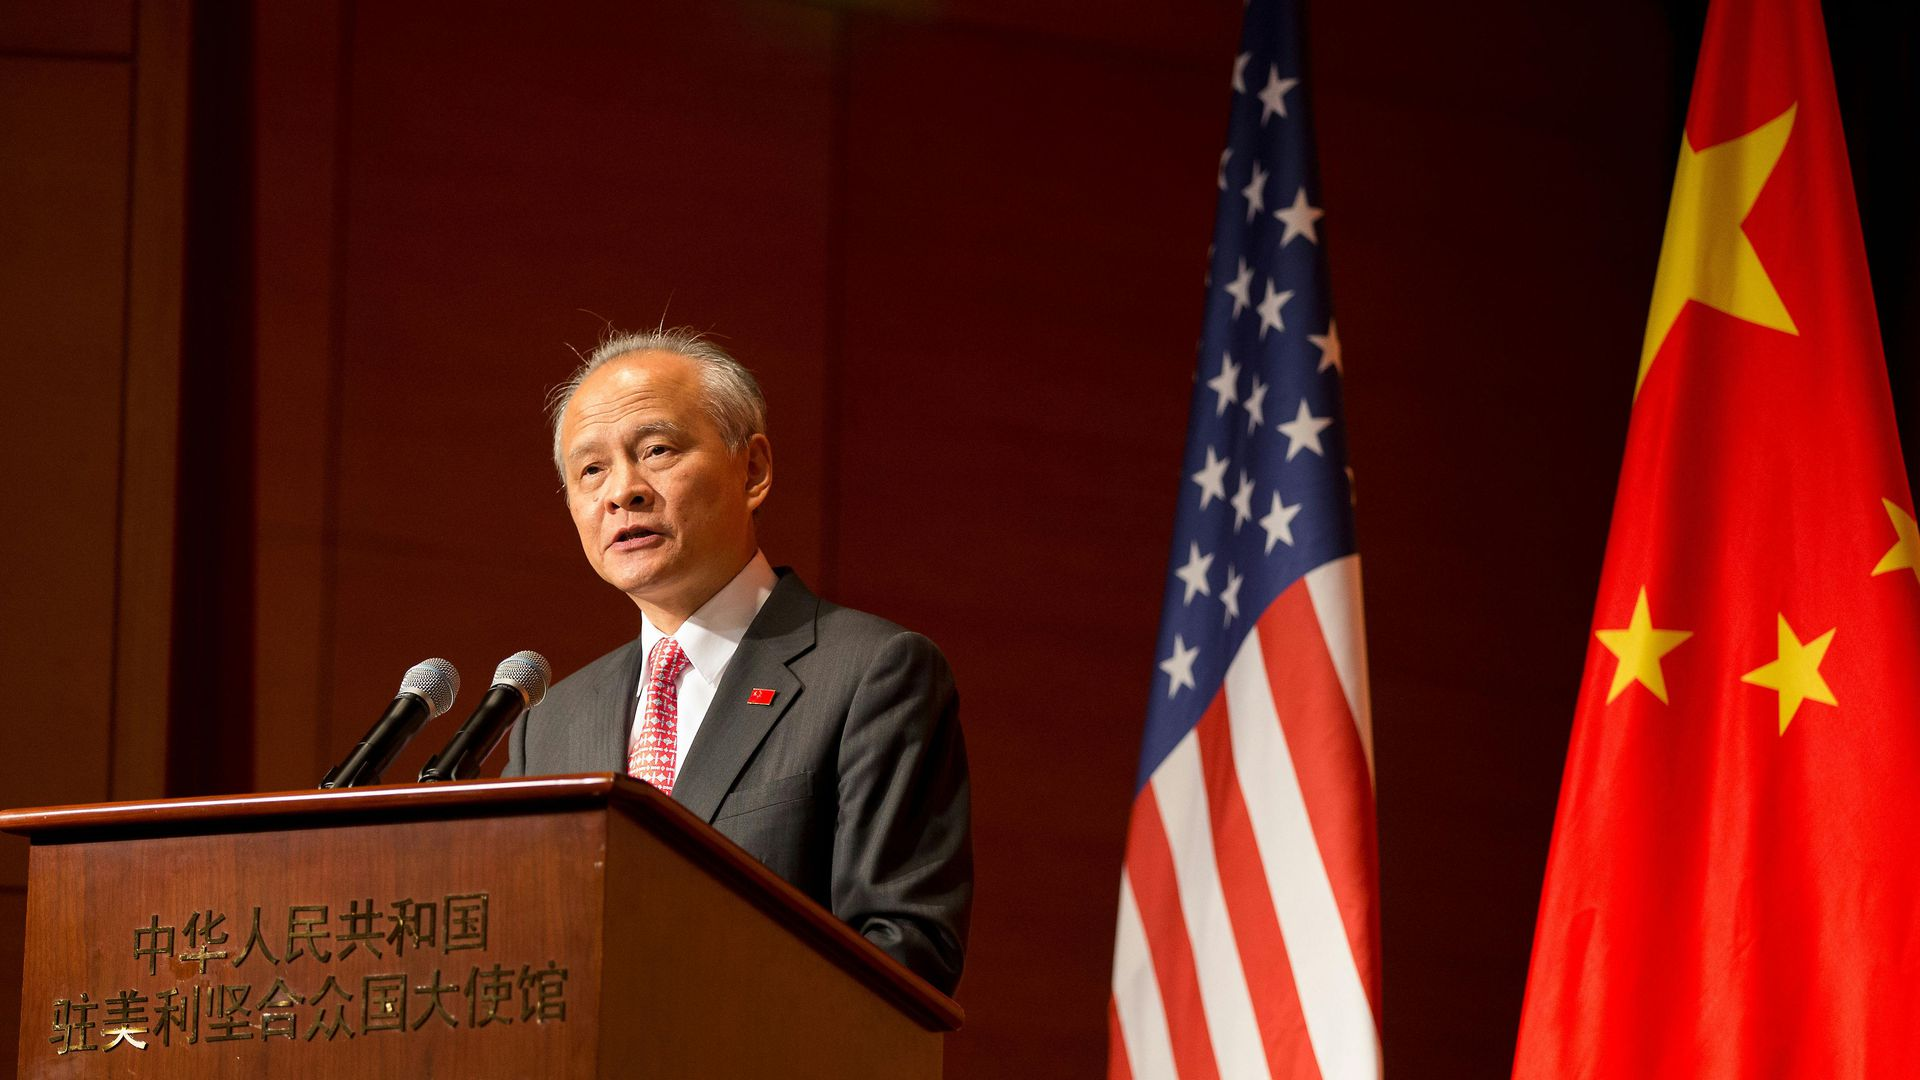 Cui Tiankai speaks at a podium.